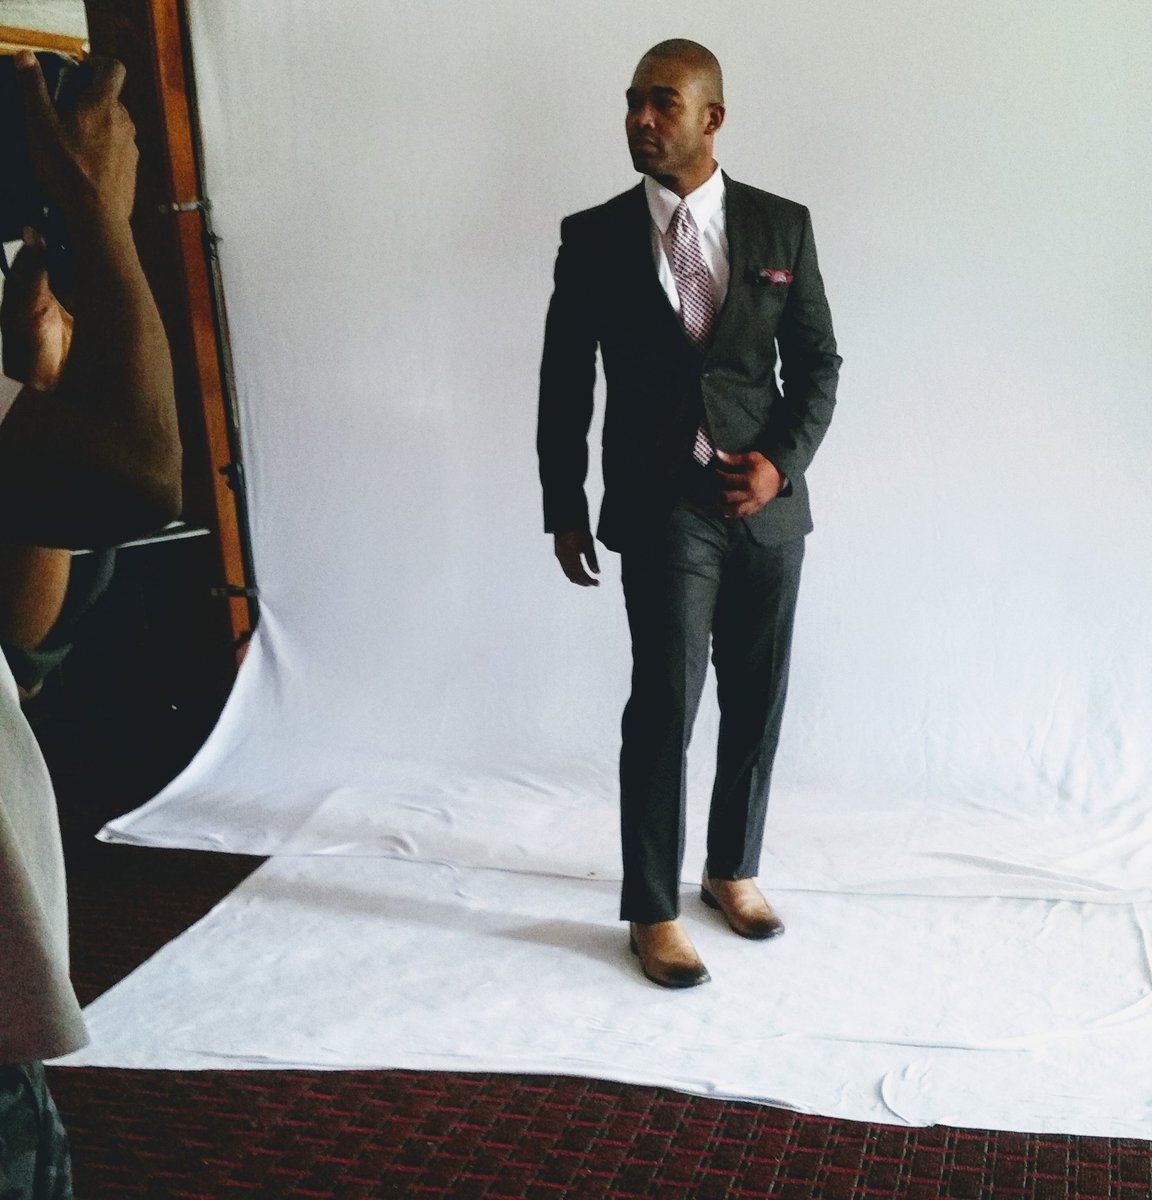 The clothes doesn't make the man, The man makes the clothes. #Actor #Model pic.twitter.com/6ClJu6Szu6